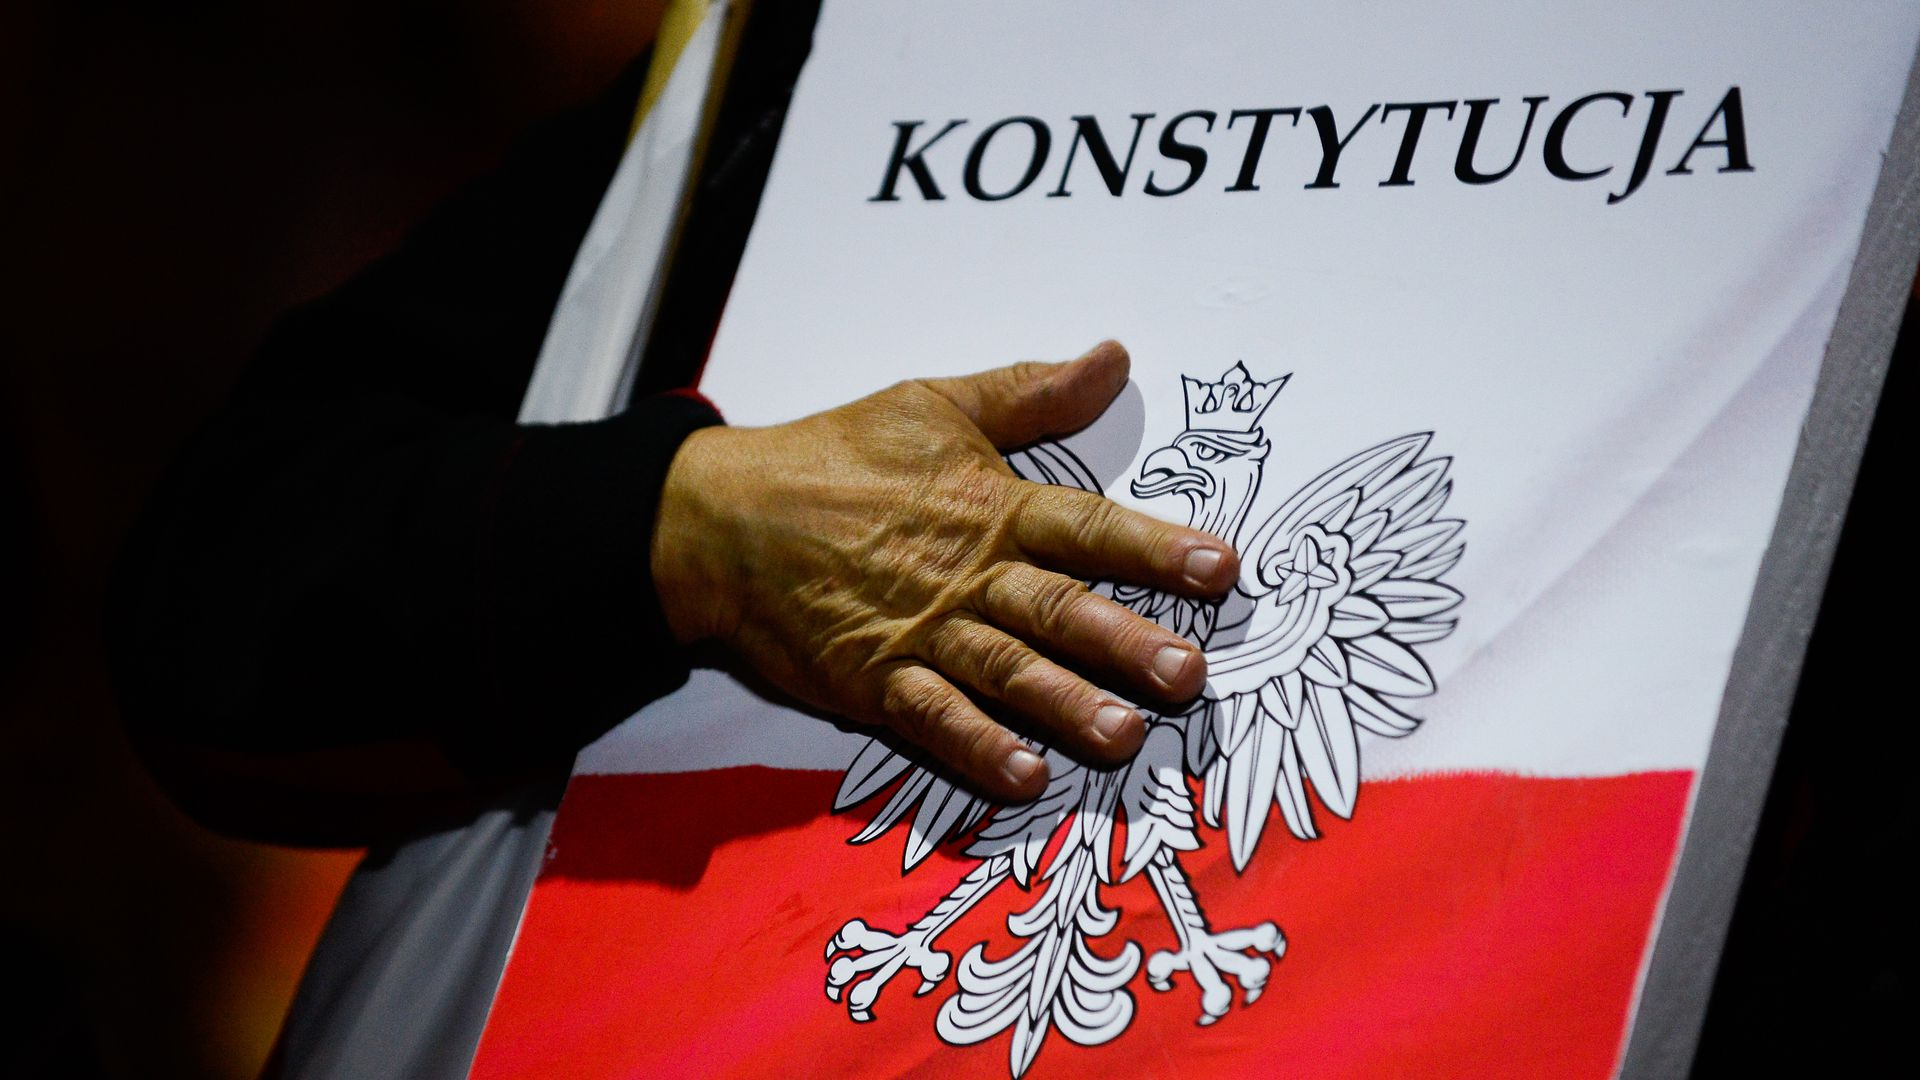 Protester with hand on Poland constitution